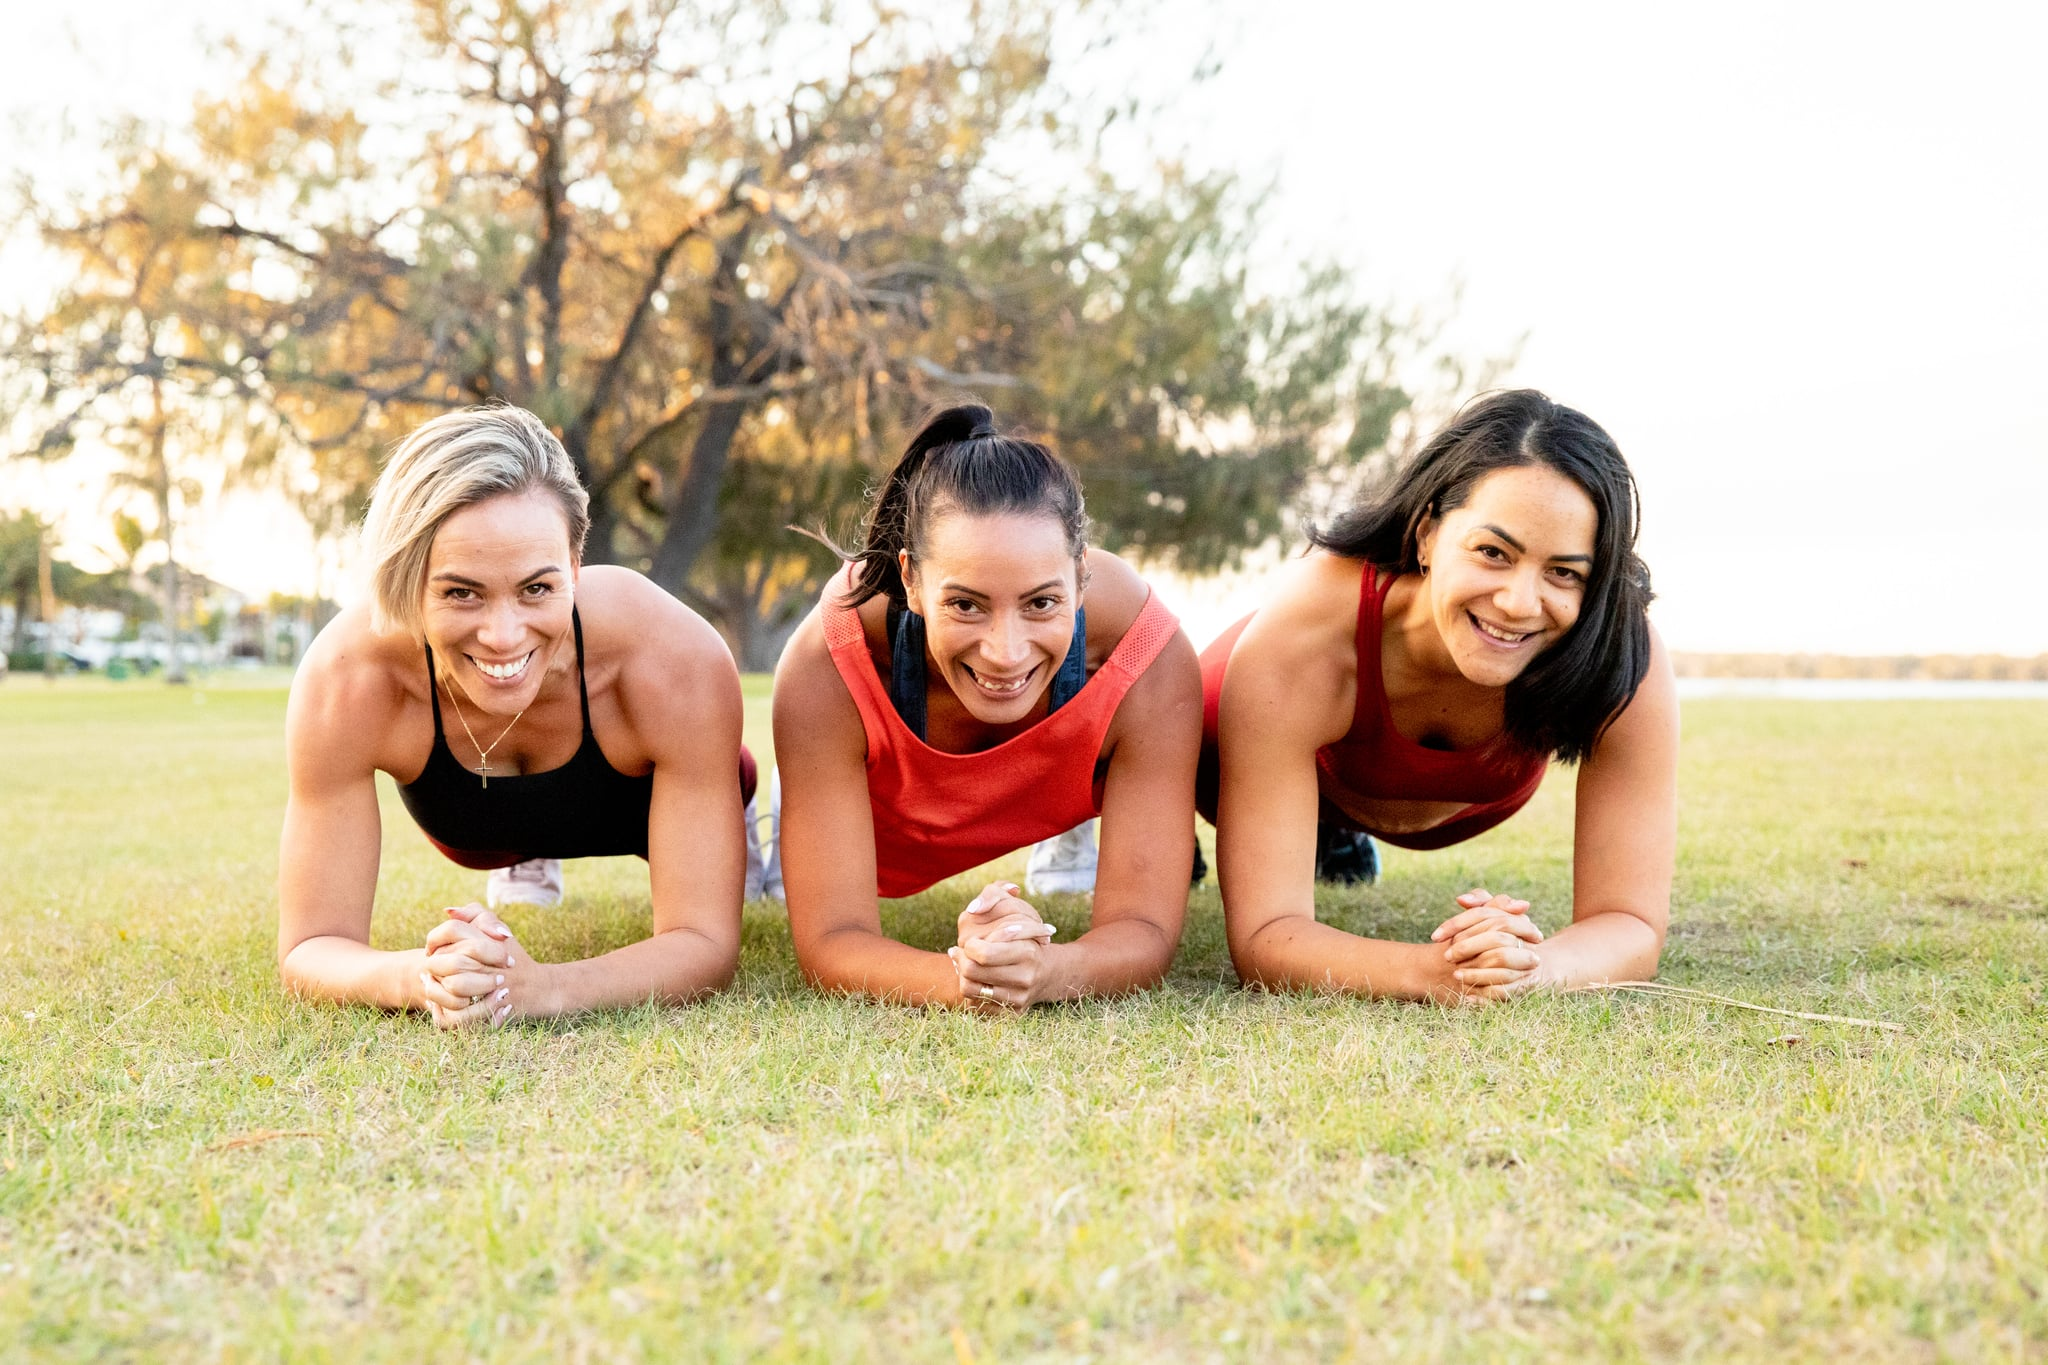 Three strong women working out together to keep fit, healthy and happy by the beach in active wear. Lifting weights, running and building core strength.